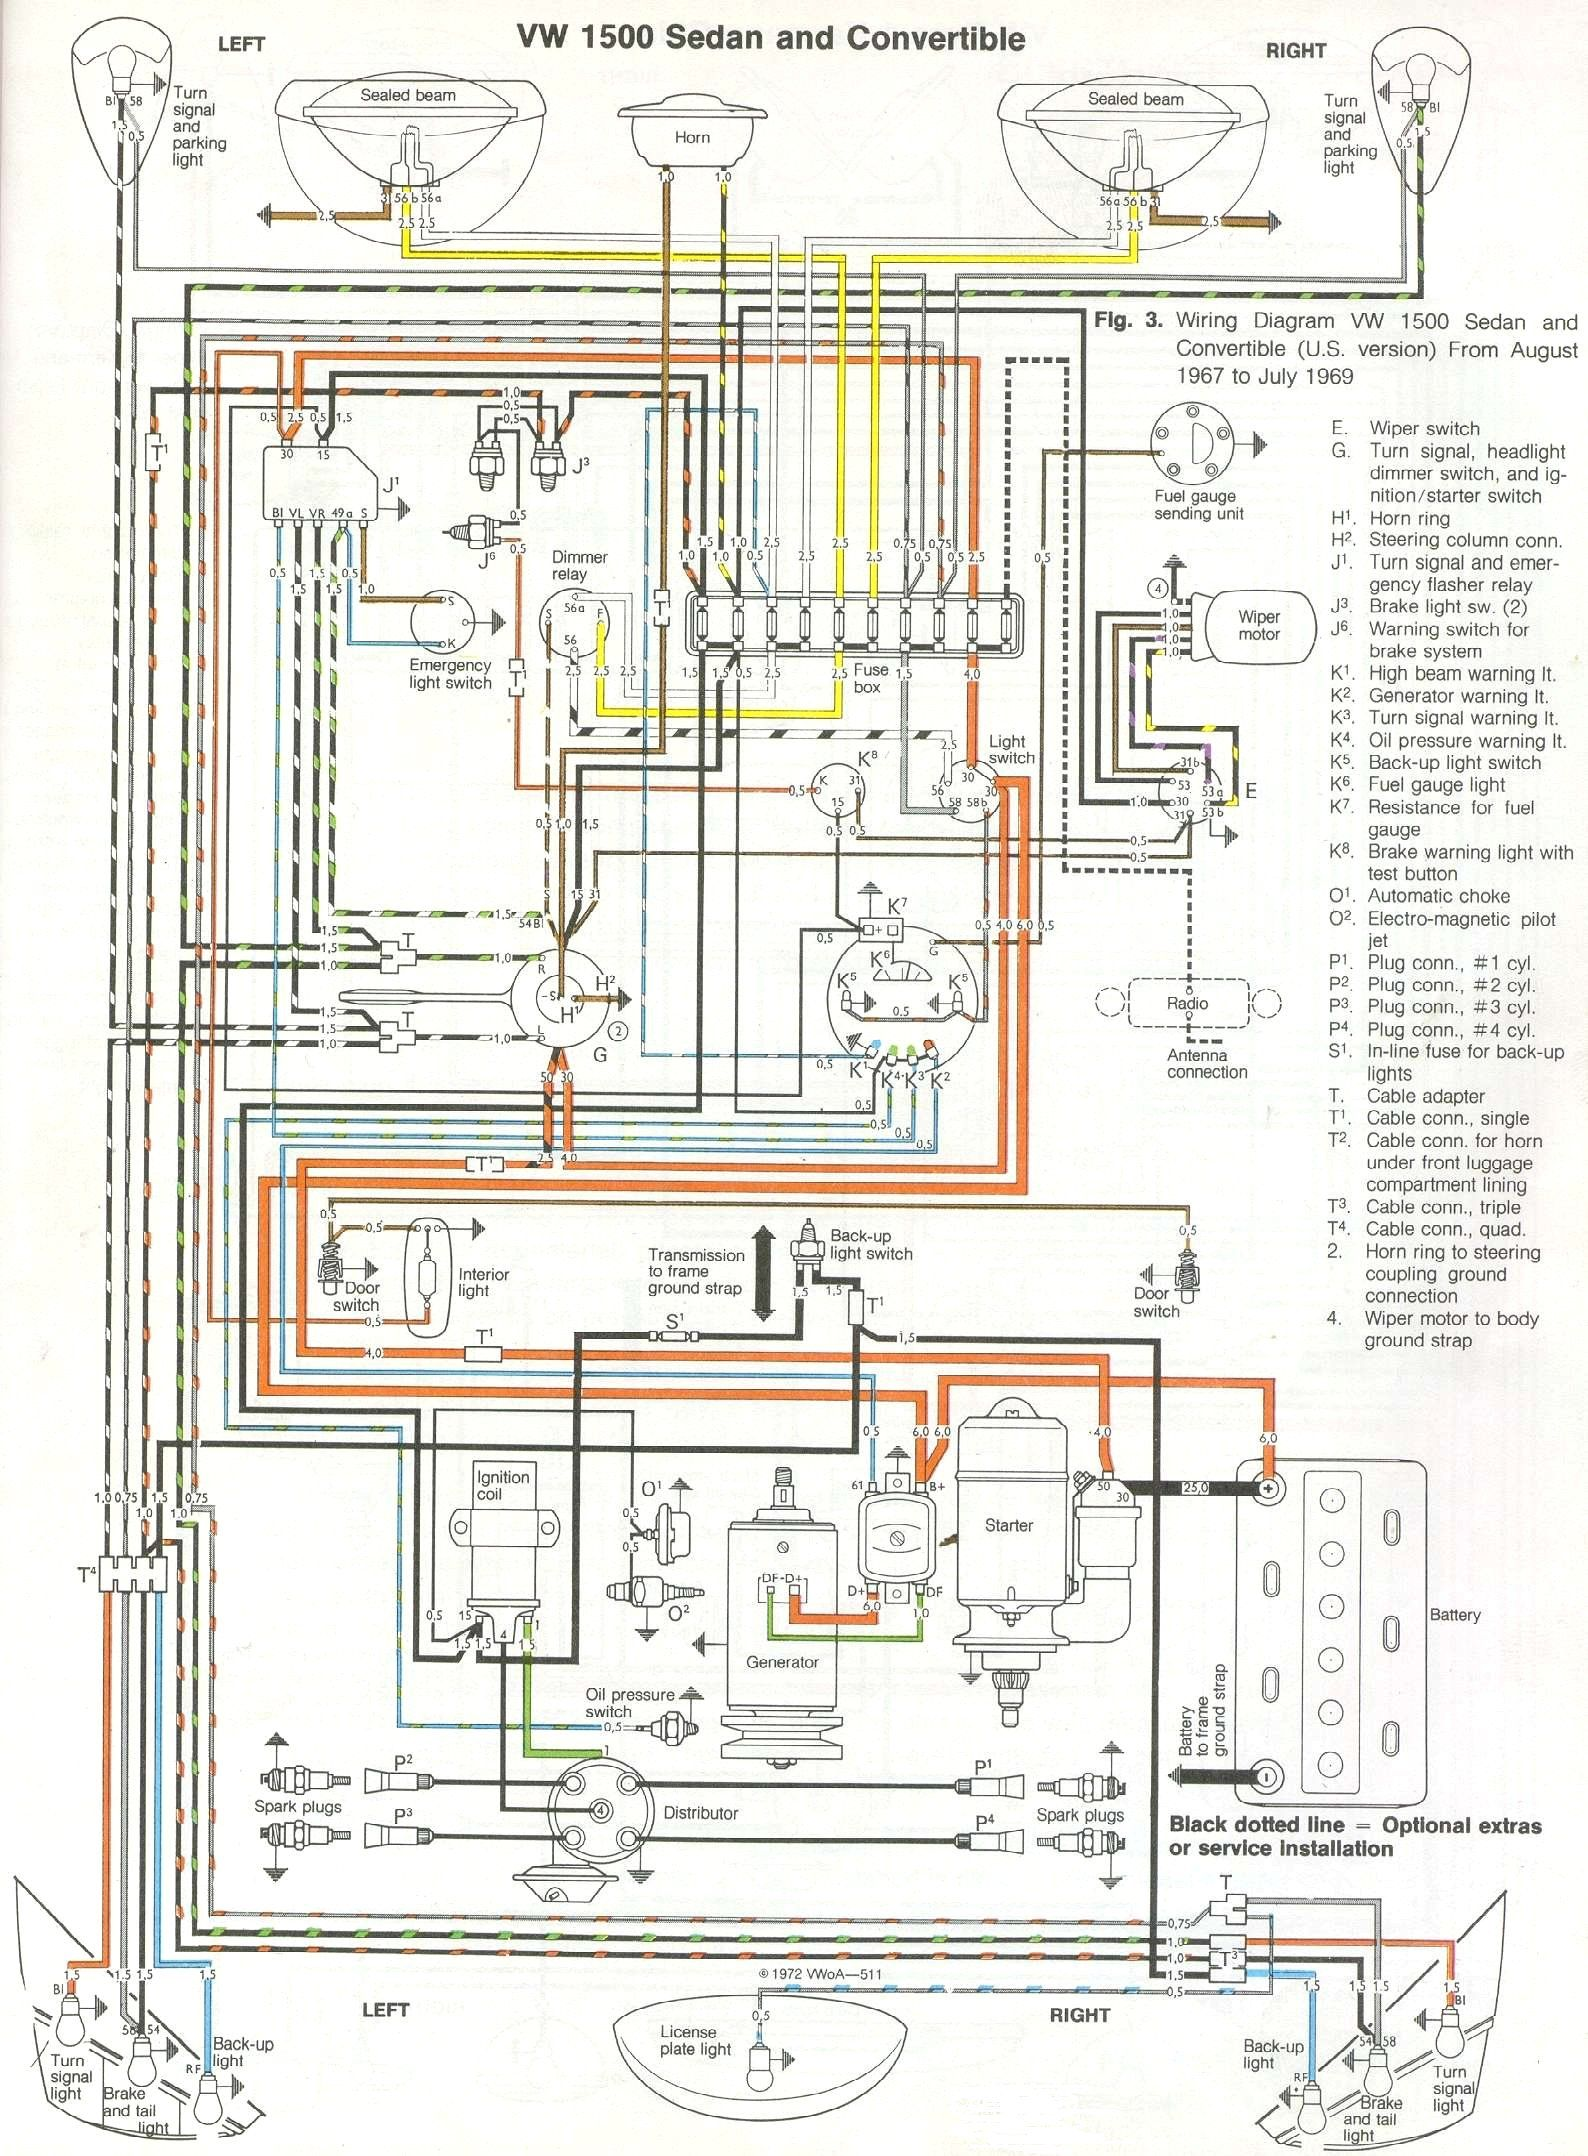 vintage vw wiring harness layout wiring diagrams u2022 rh laurafinlay co uk  VW Beetle Wiring Harness 2000 VW Passat Stereo Wiring Harness